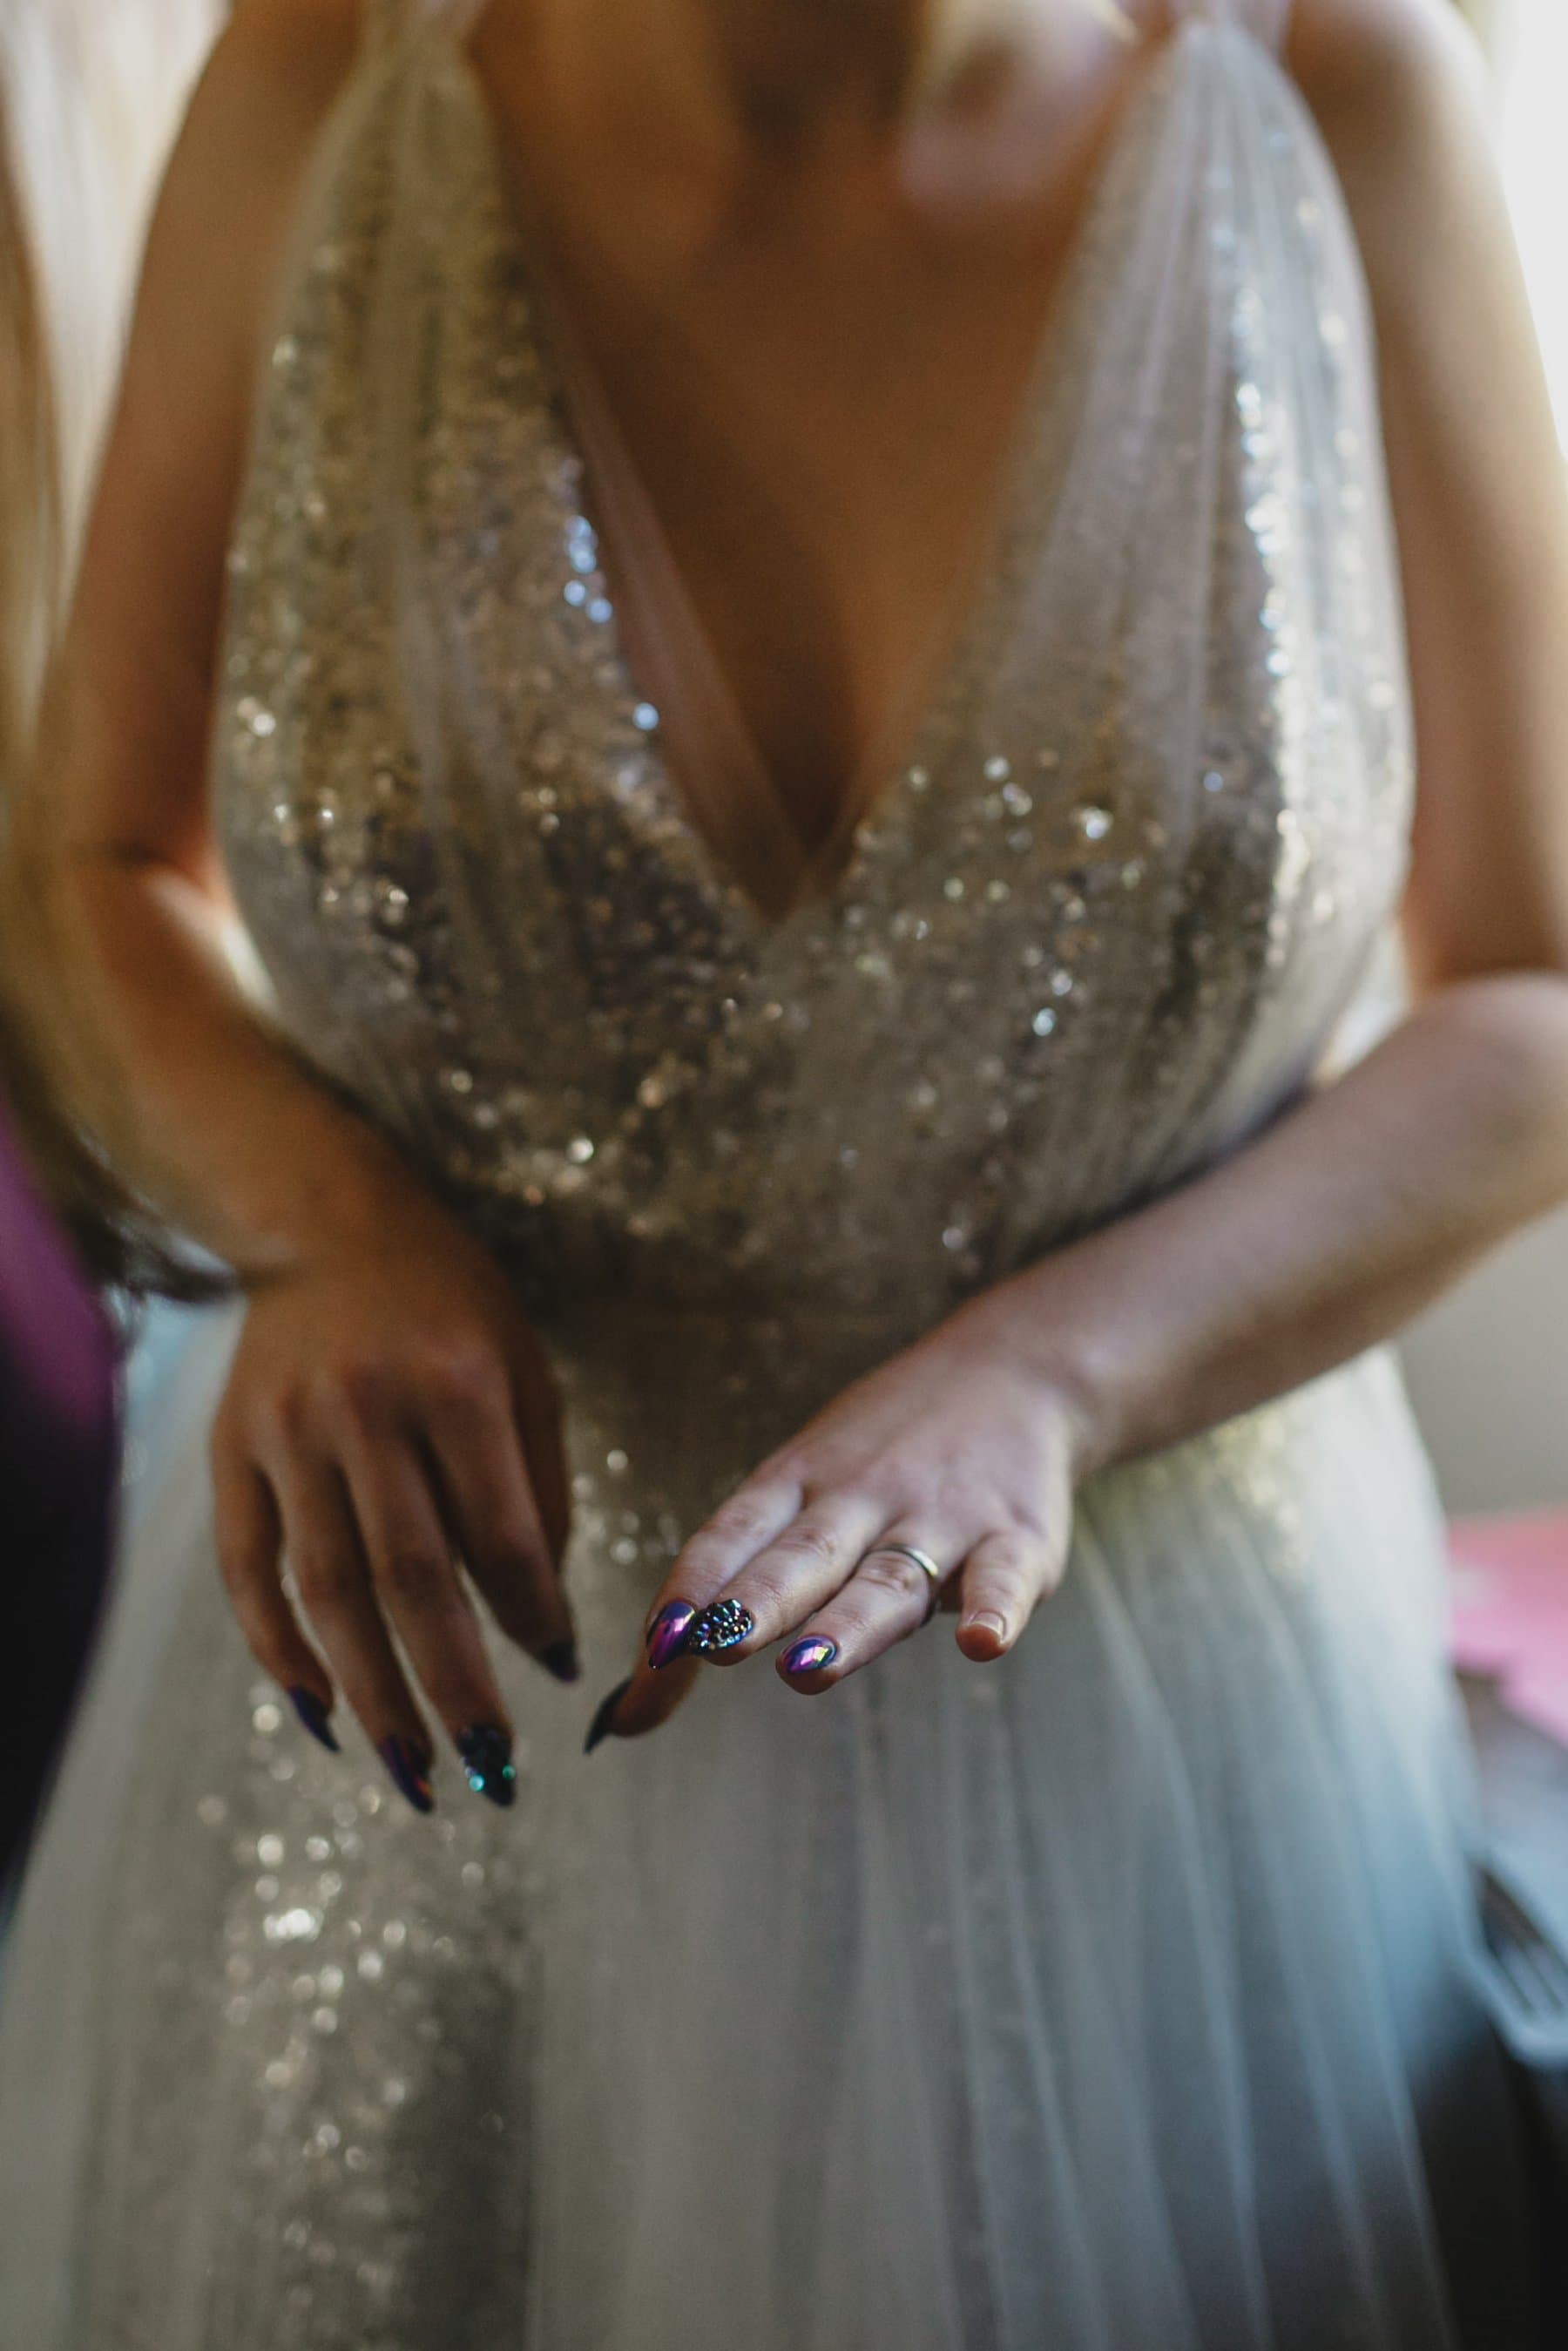 iridescent blue fake nails alternative wedding